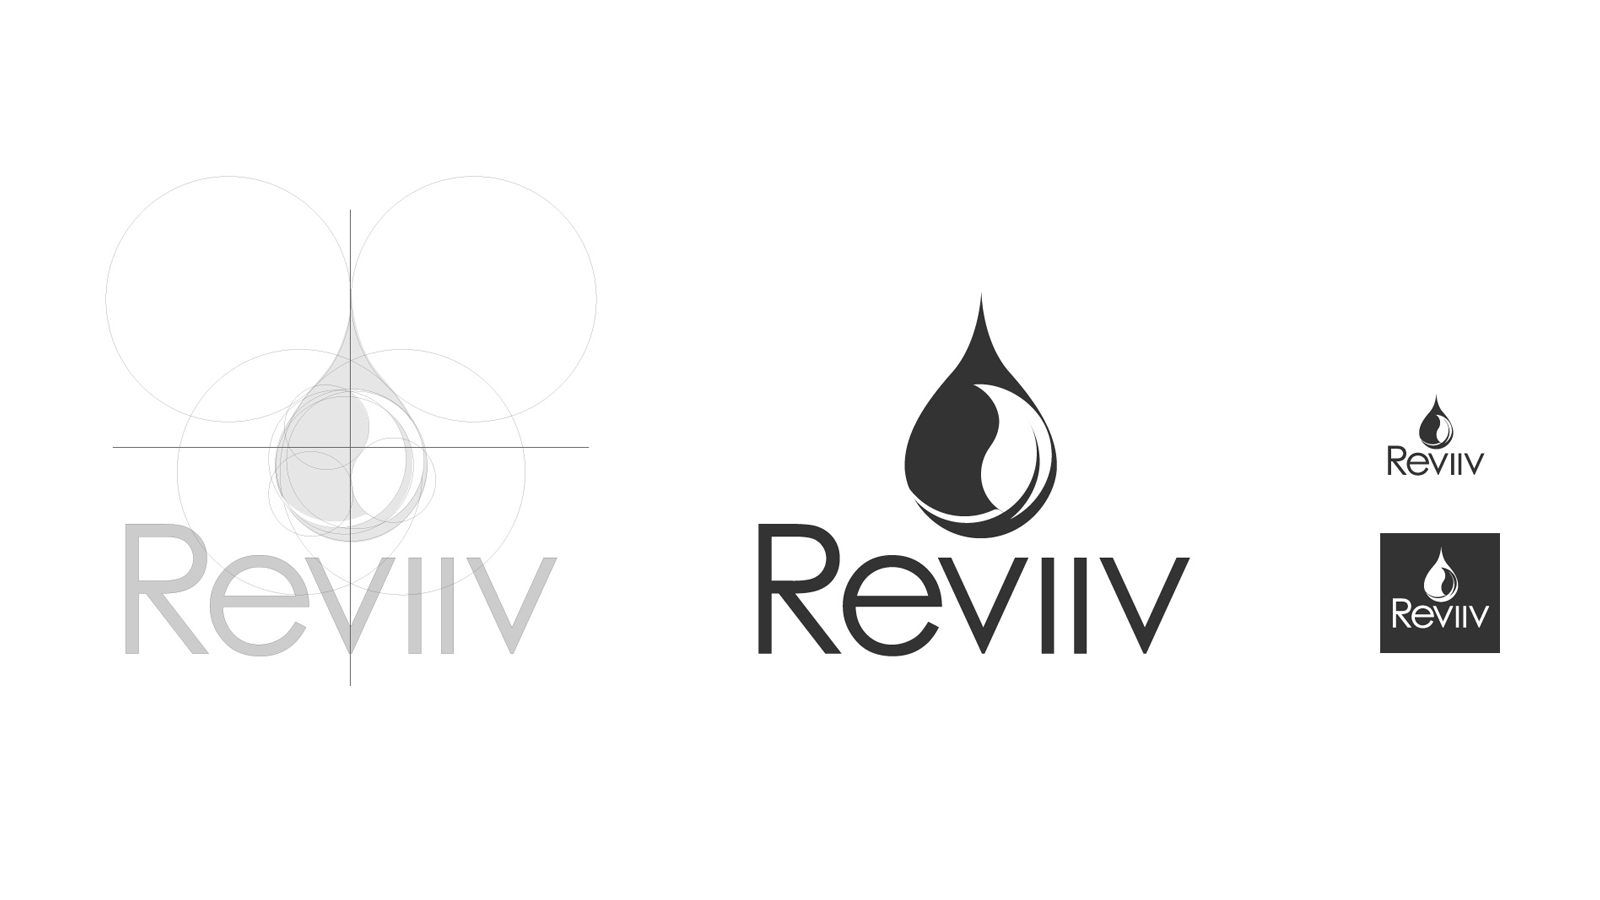 Reviiv Logo Design